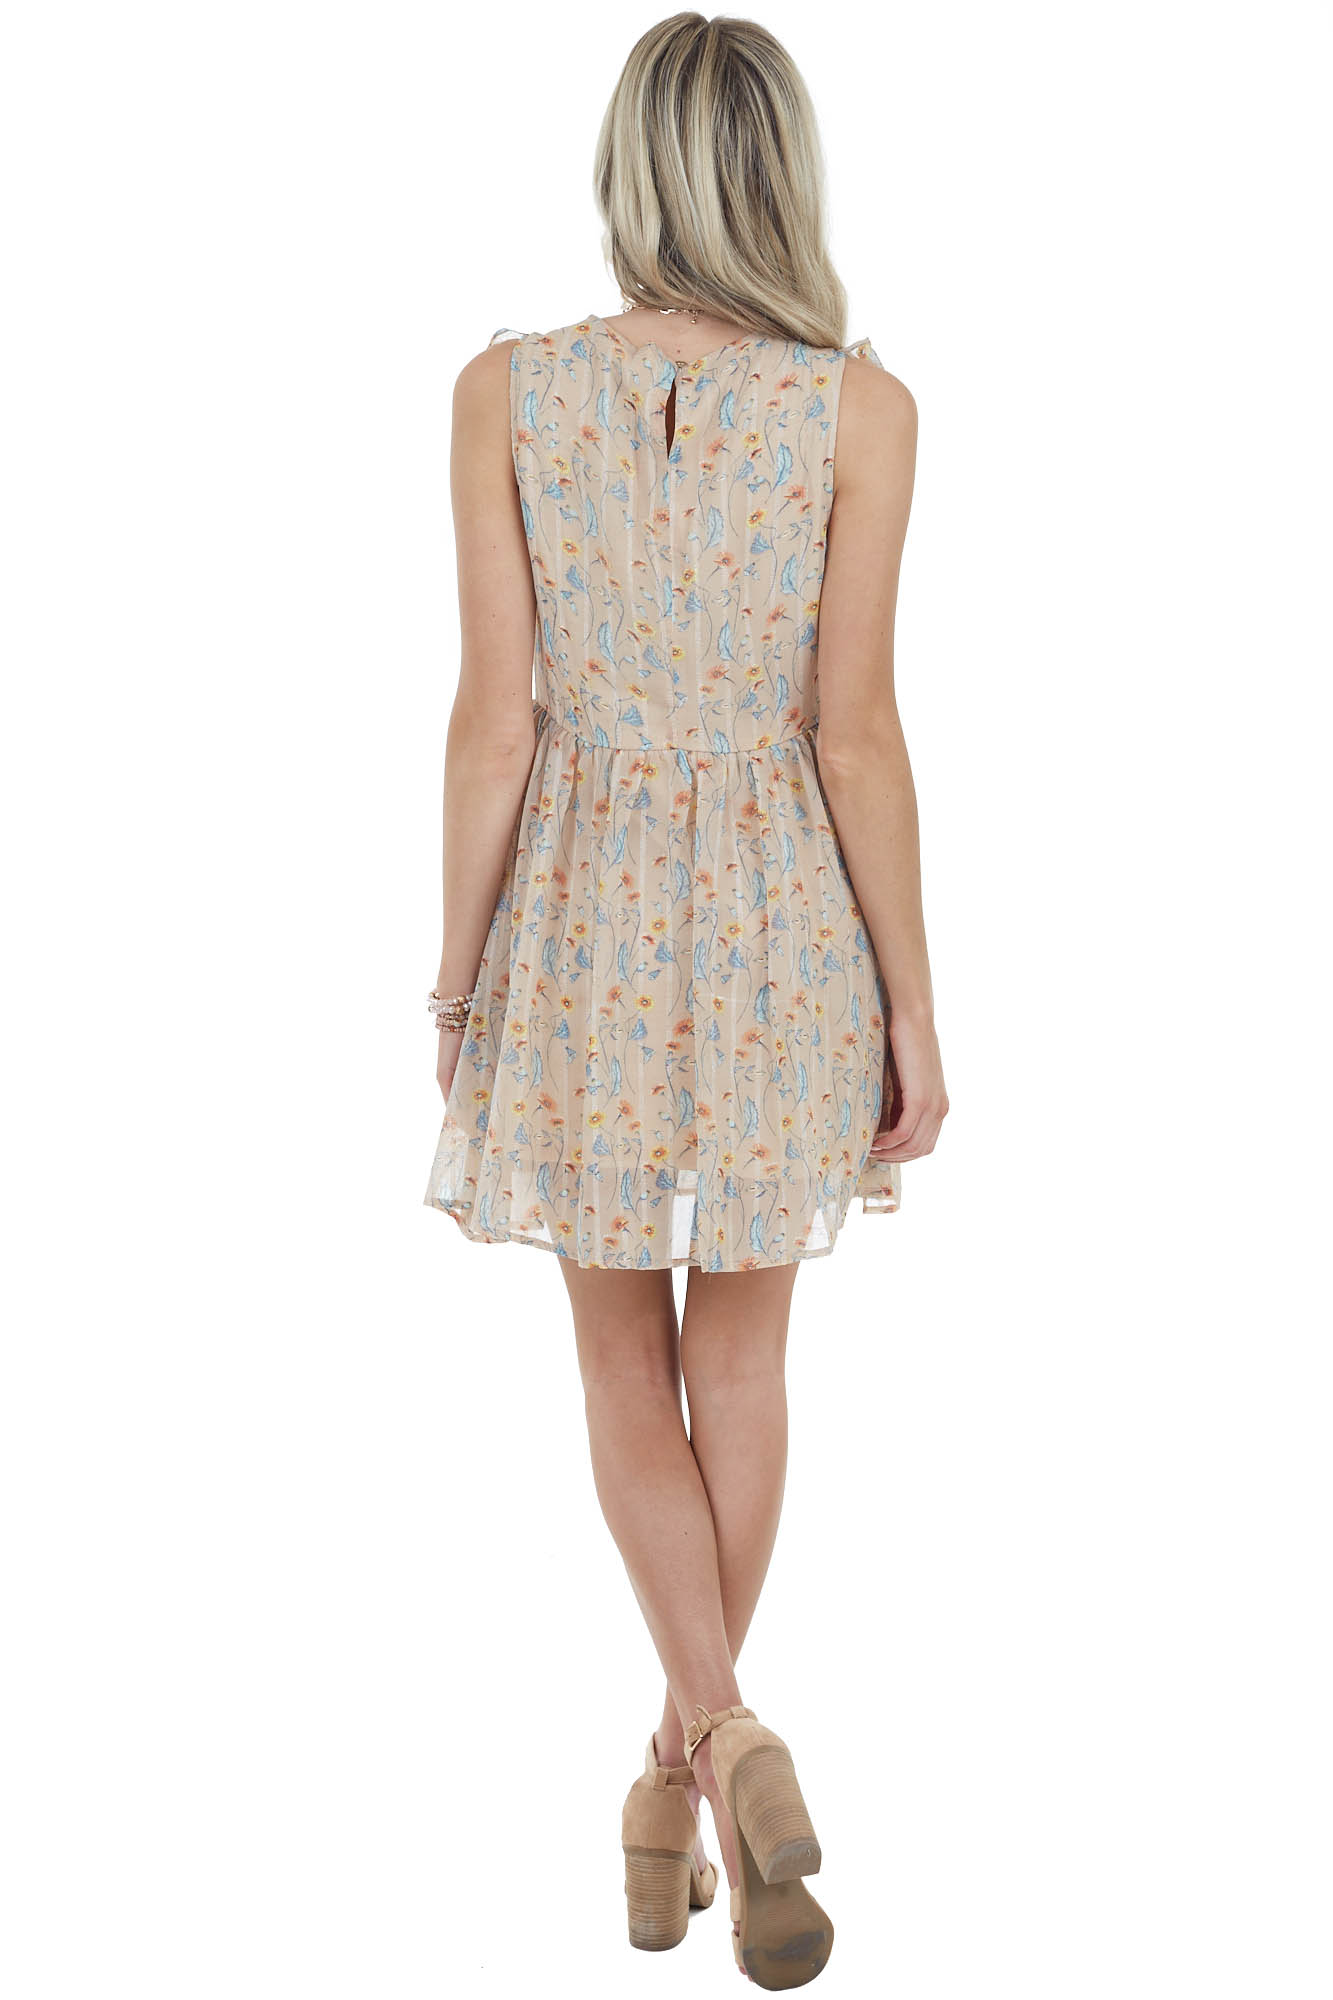 Beige Floral Print Surplice Dress with Ruffle Details